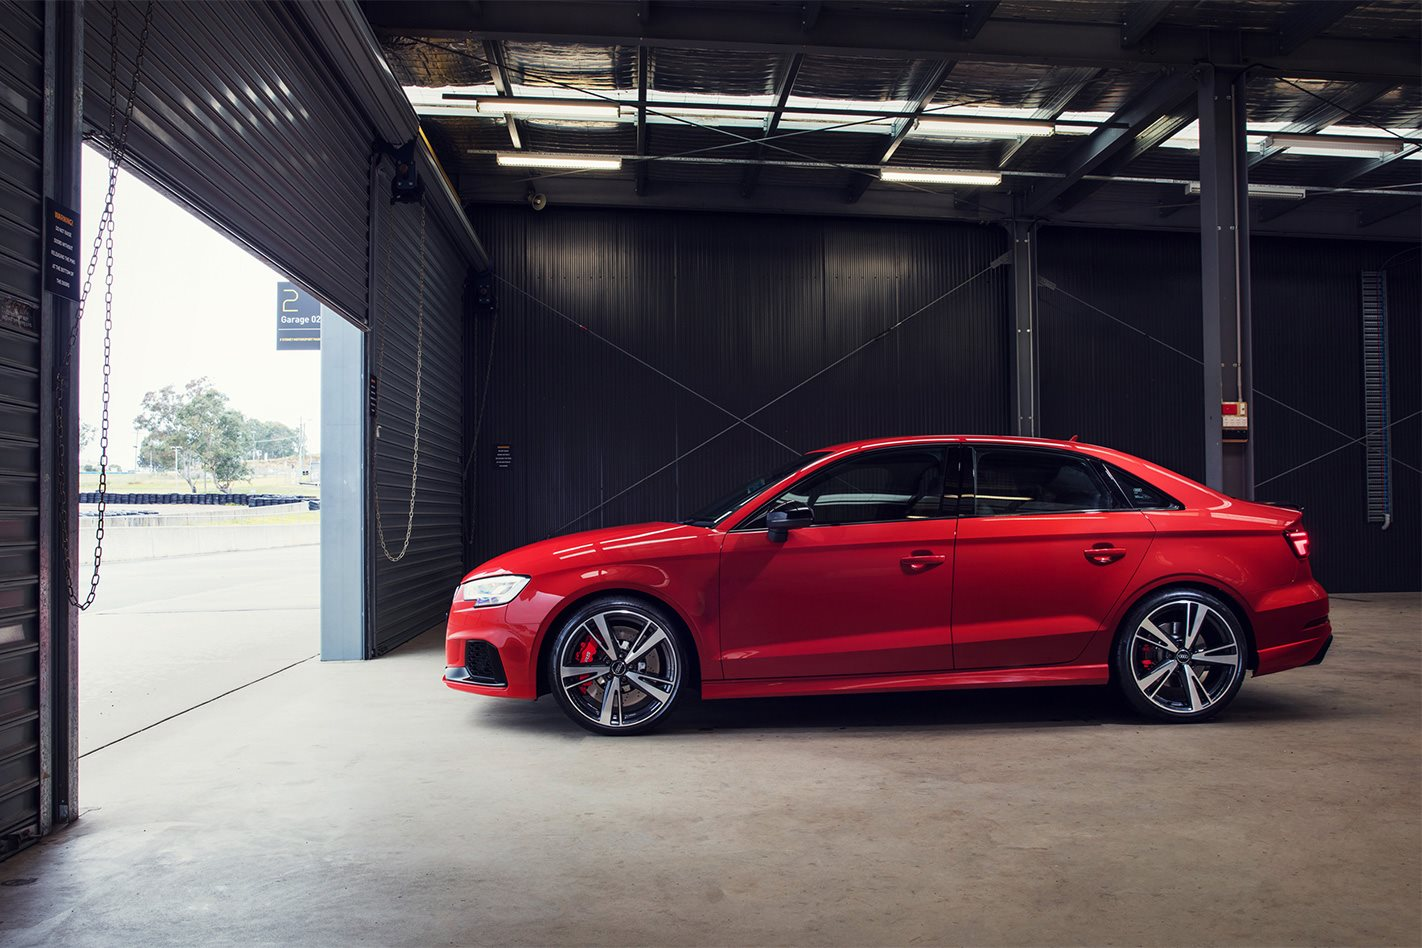 2017 Audi RS3 Sedan profile